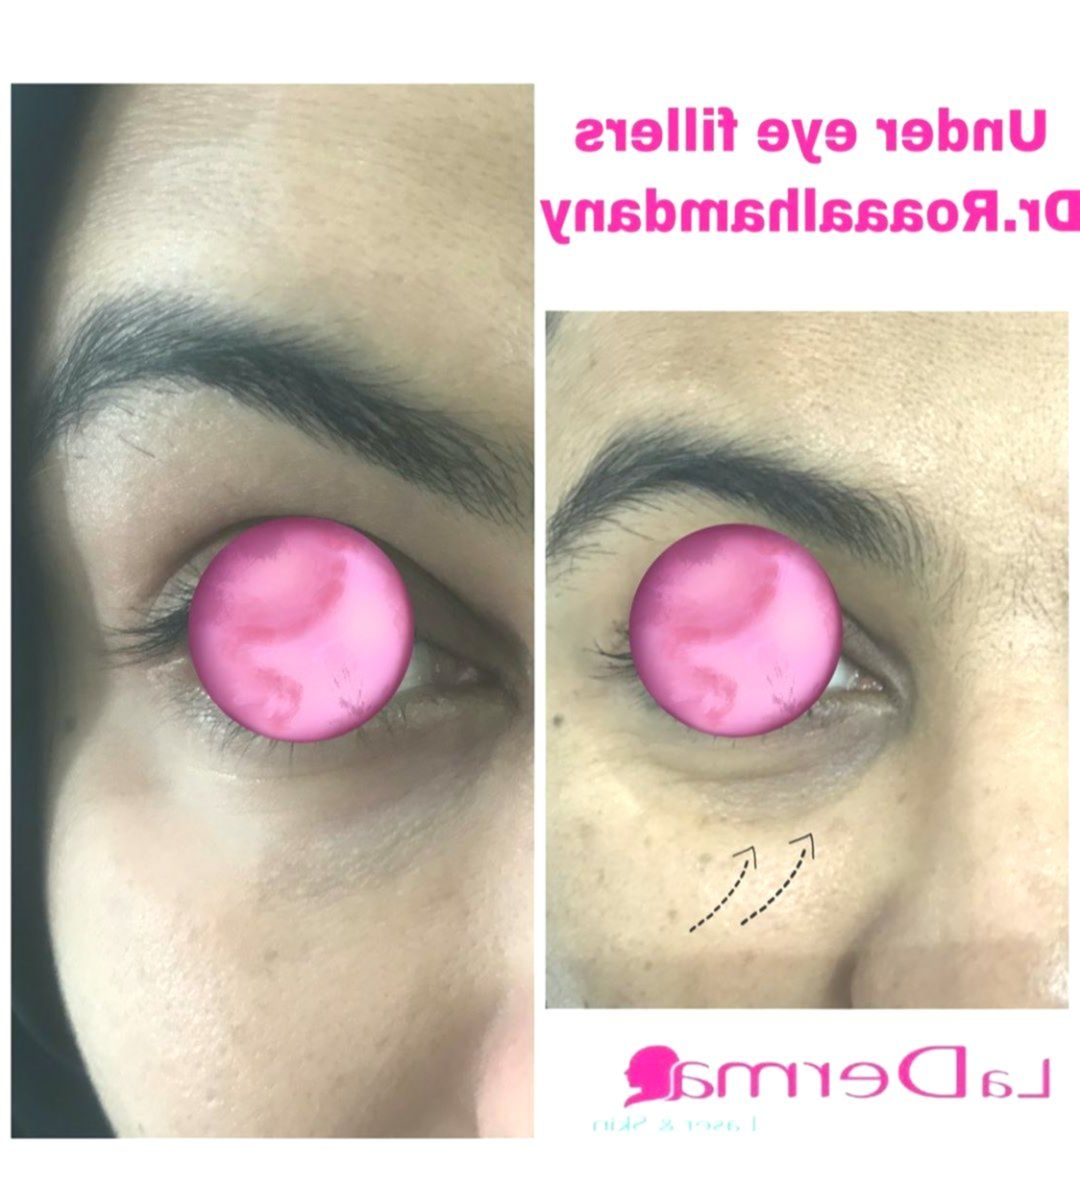 فيلر تحت العين Under Eye Filler Dr Roaa Alhamdany Moh 205 2019 Under Eye Fillers Undereye Mesotherapy